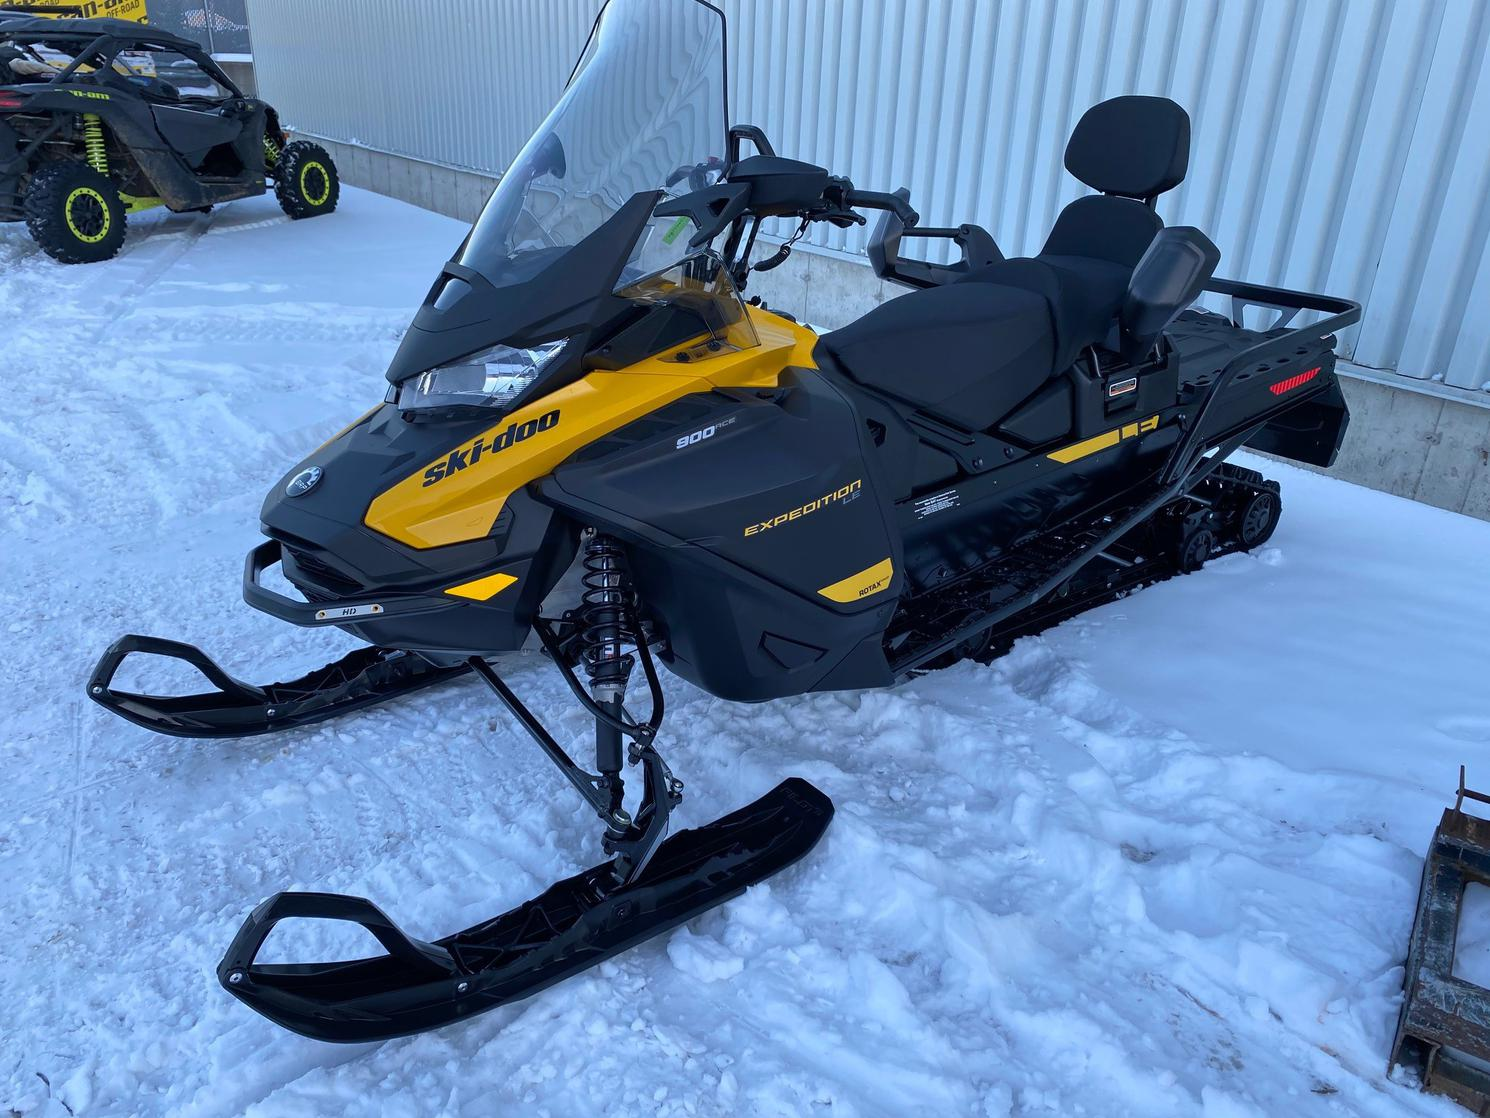 2021 Ski-Doo EXPEDITION LE 900 ACE WIDE TRACk 20""